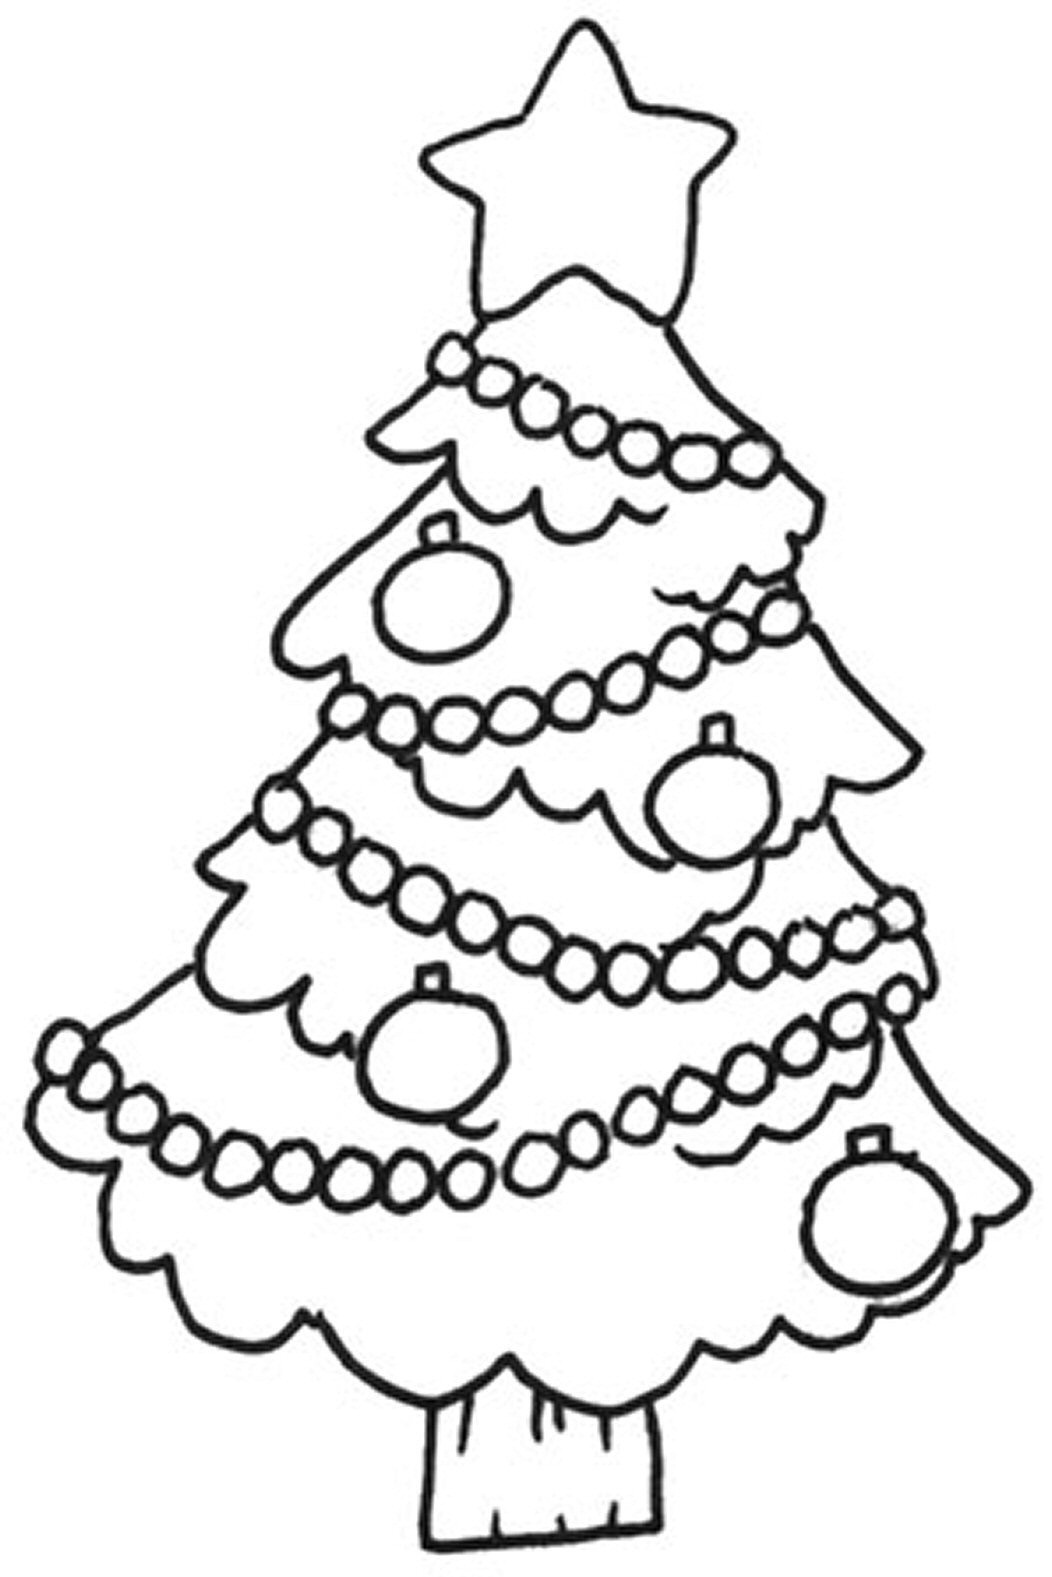 Coloring pages christmas tree blank christmas tree coloring pages - Christmas Tree Printable Coloring Pages